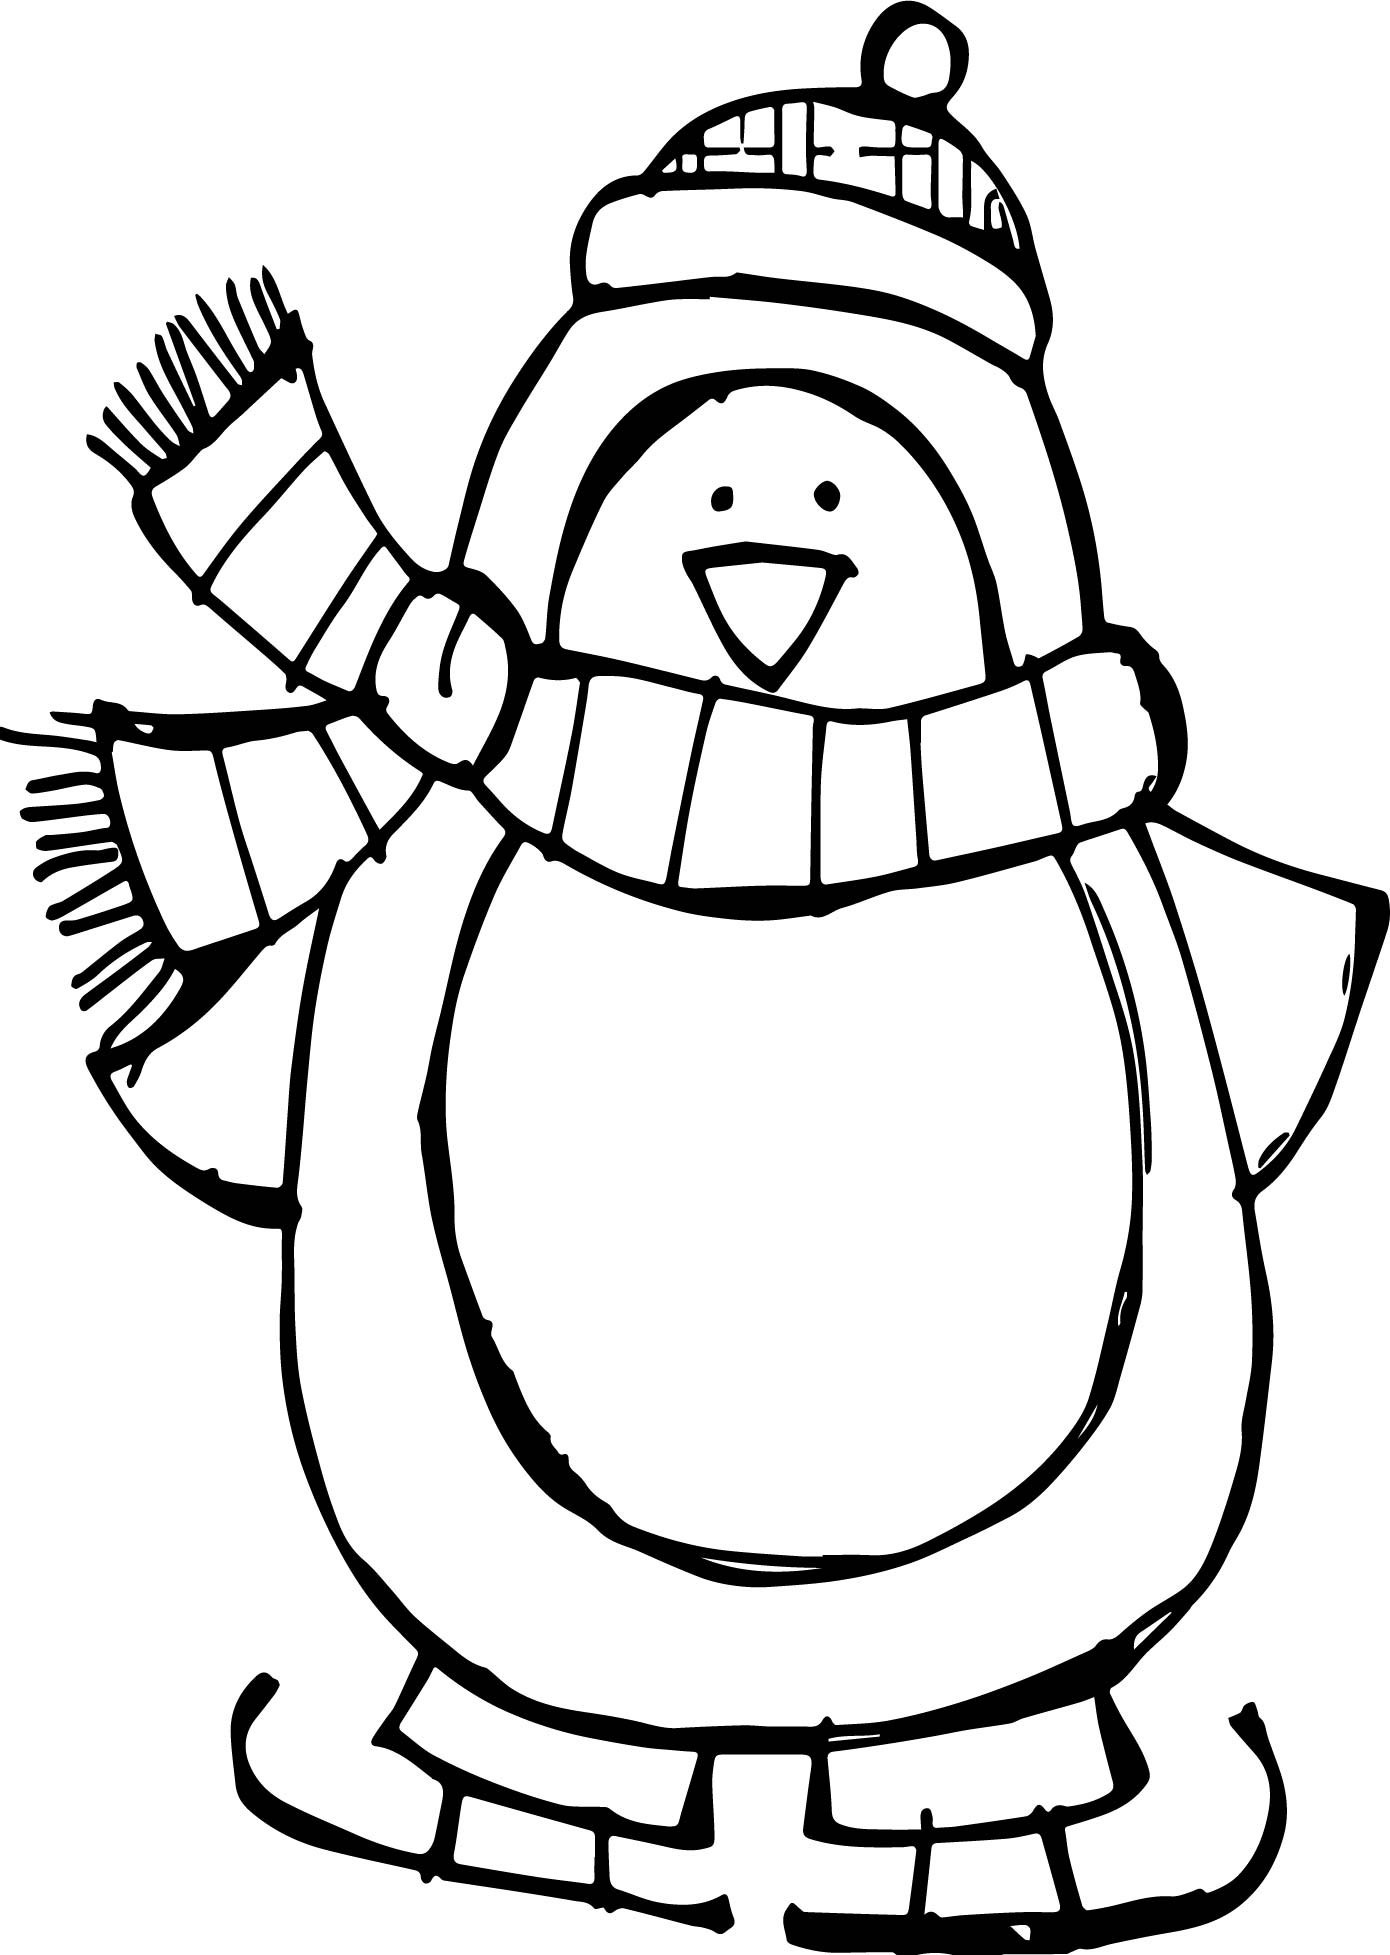 penguin colouring sheets printable penguin coloring pages for kids cool2bkids sheets penguin colouring